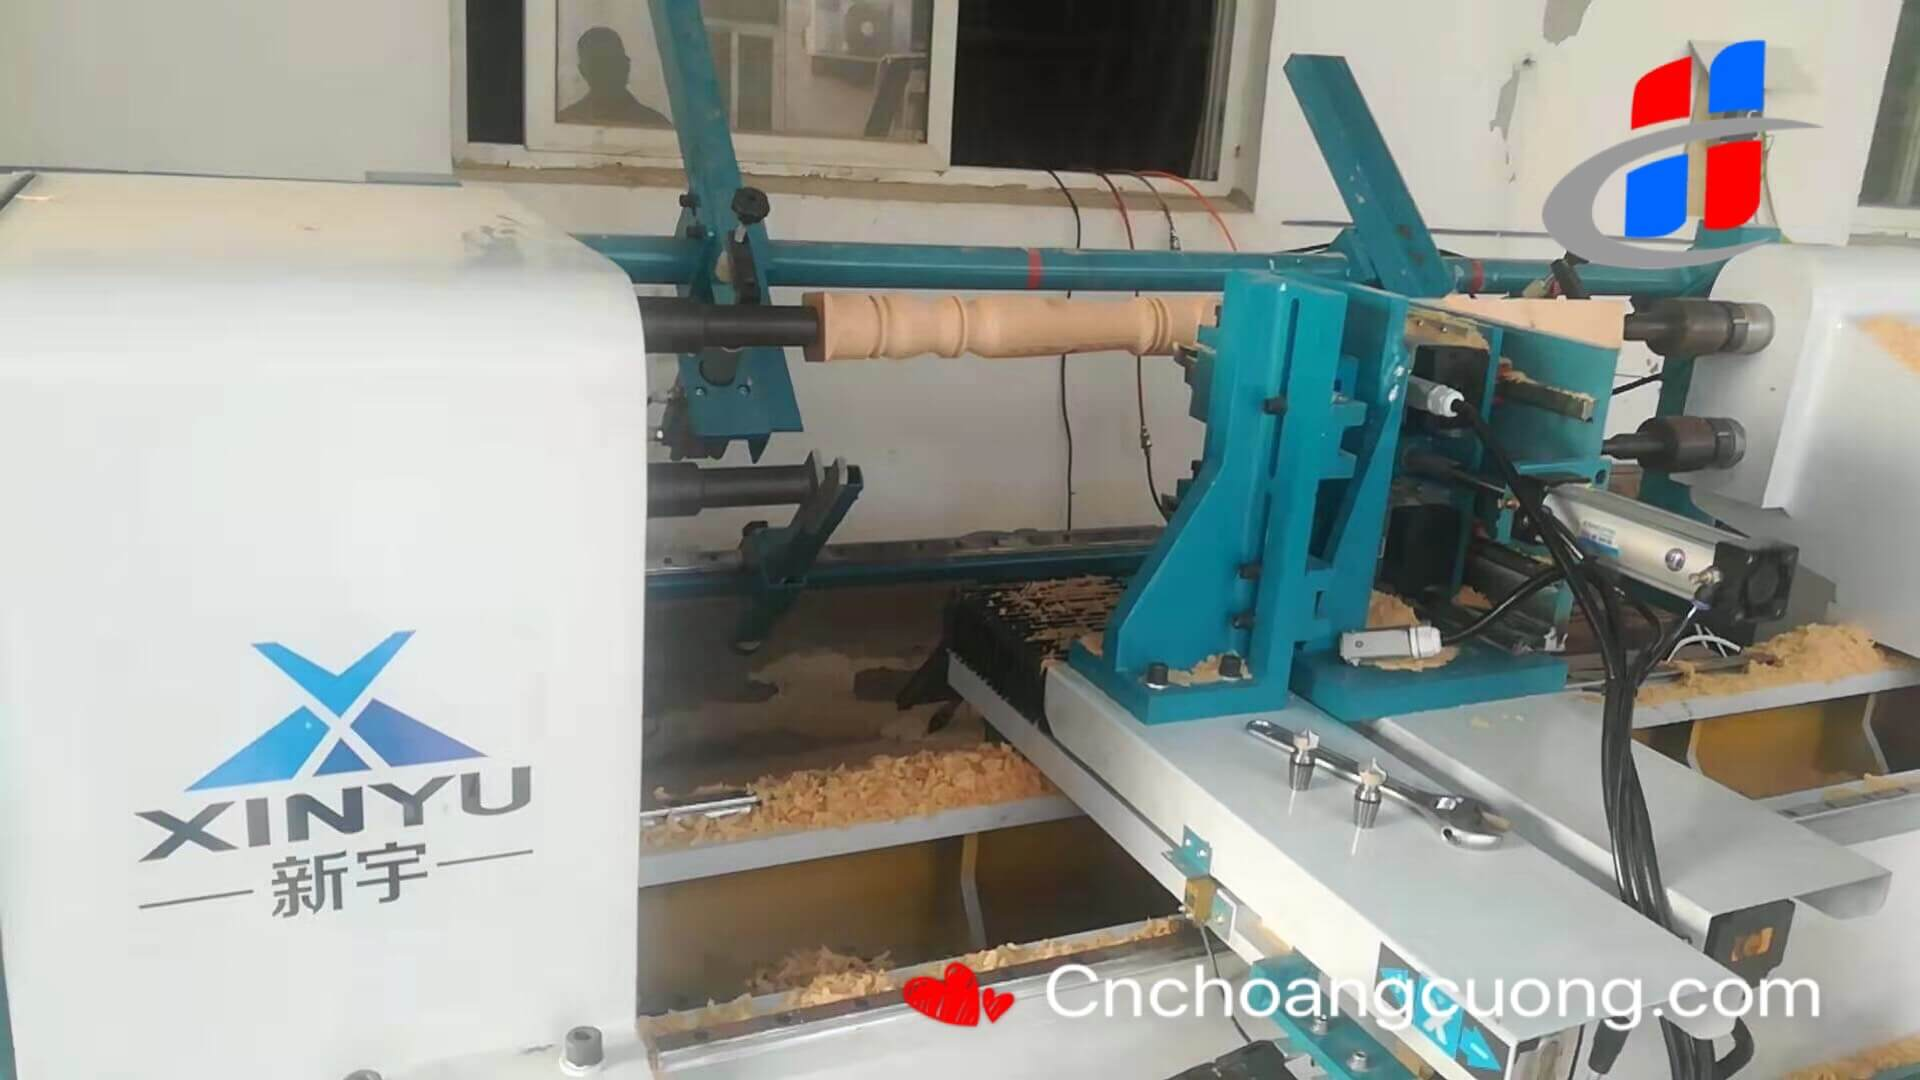 https://cnchoangcuong.com/?post_type=product&p=2332&preview=true